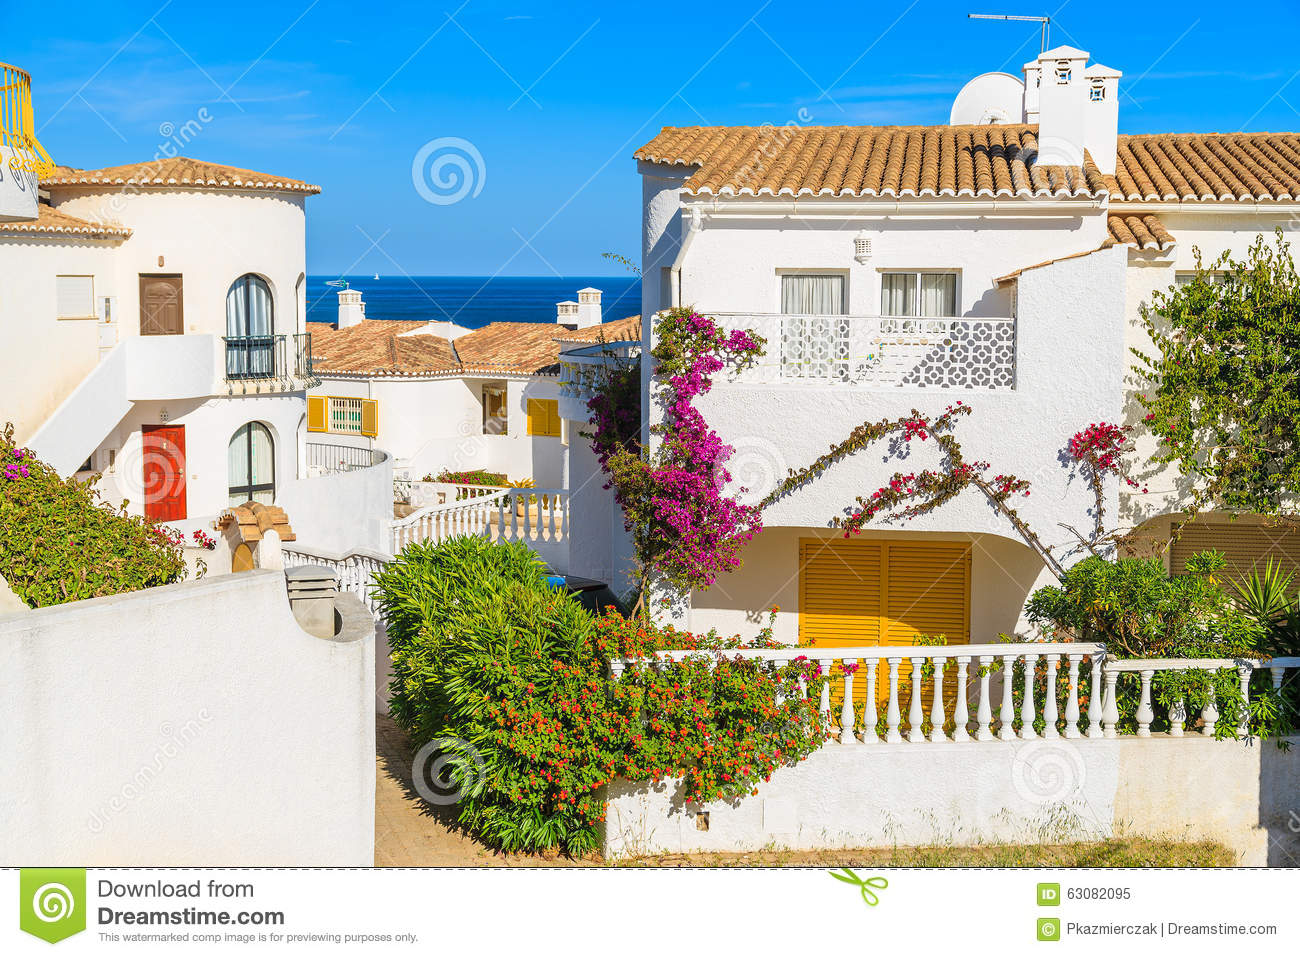 Download Maisons De Vacances En Ville De Luz Image stock - Image du lifestyle, maison: 63082095